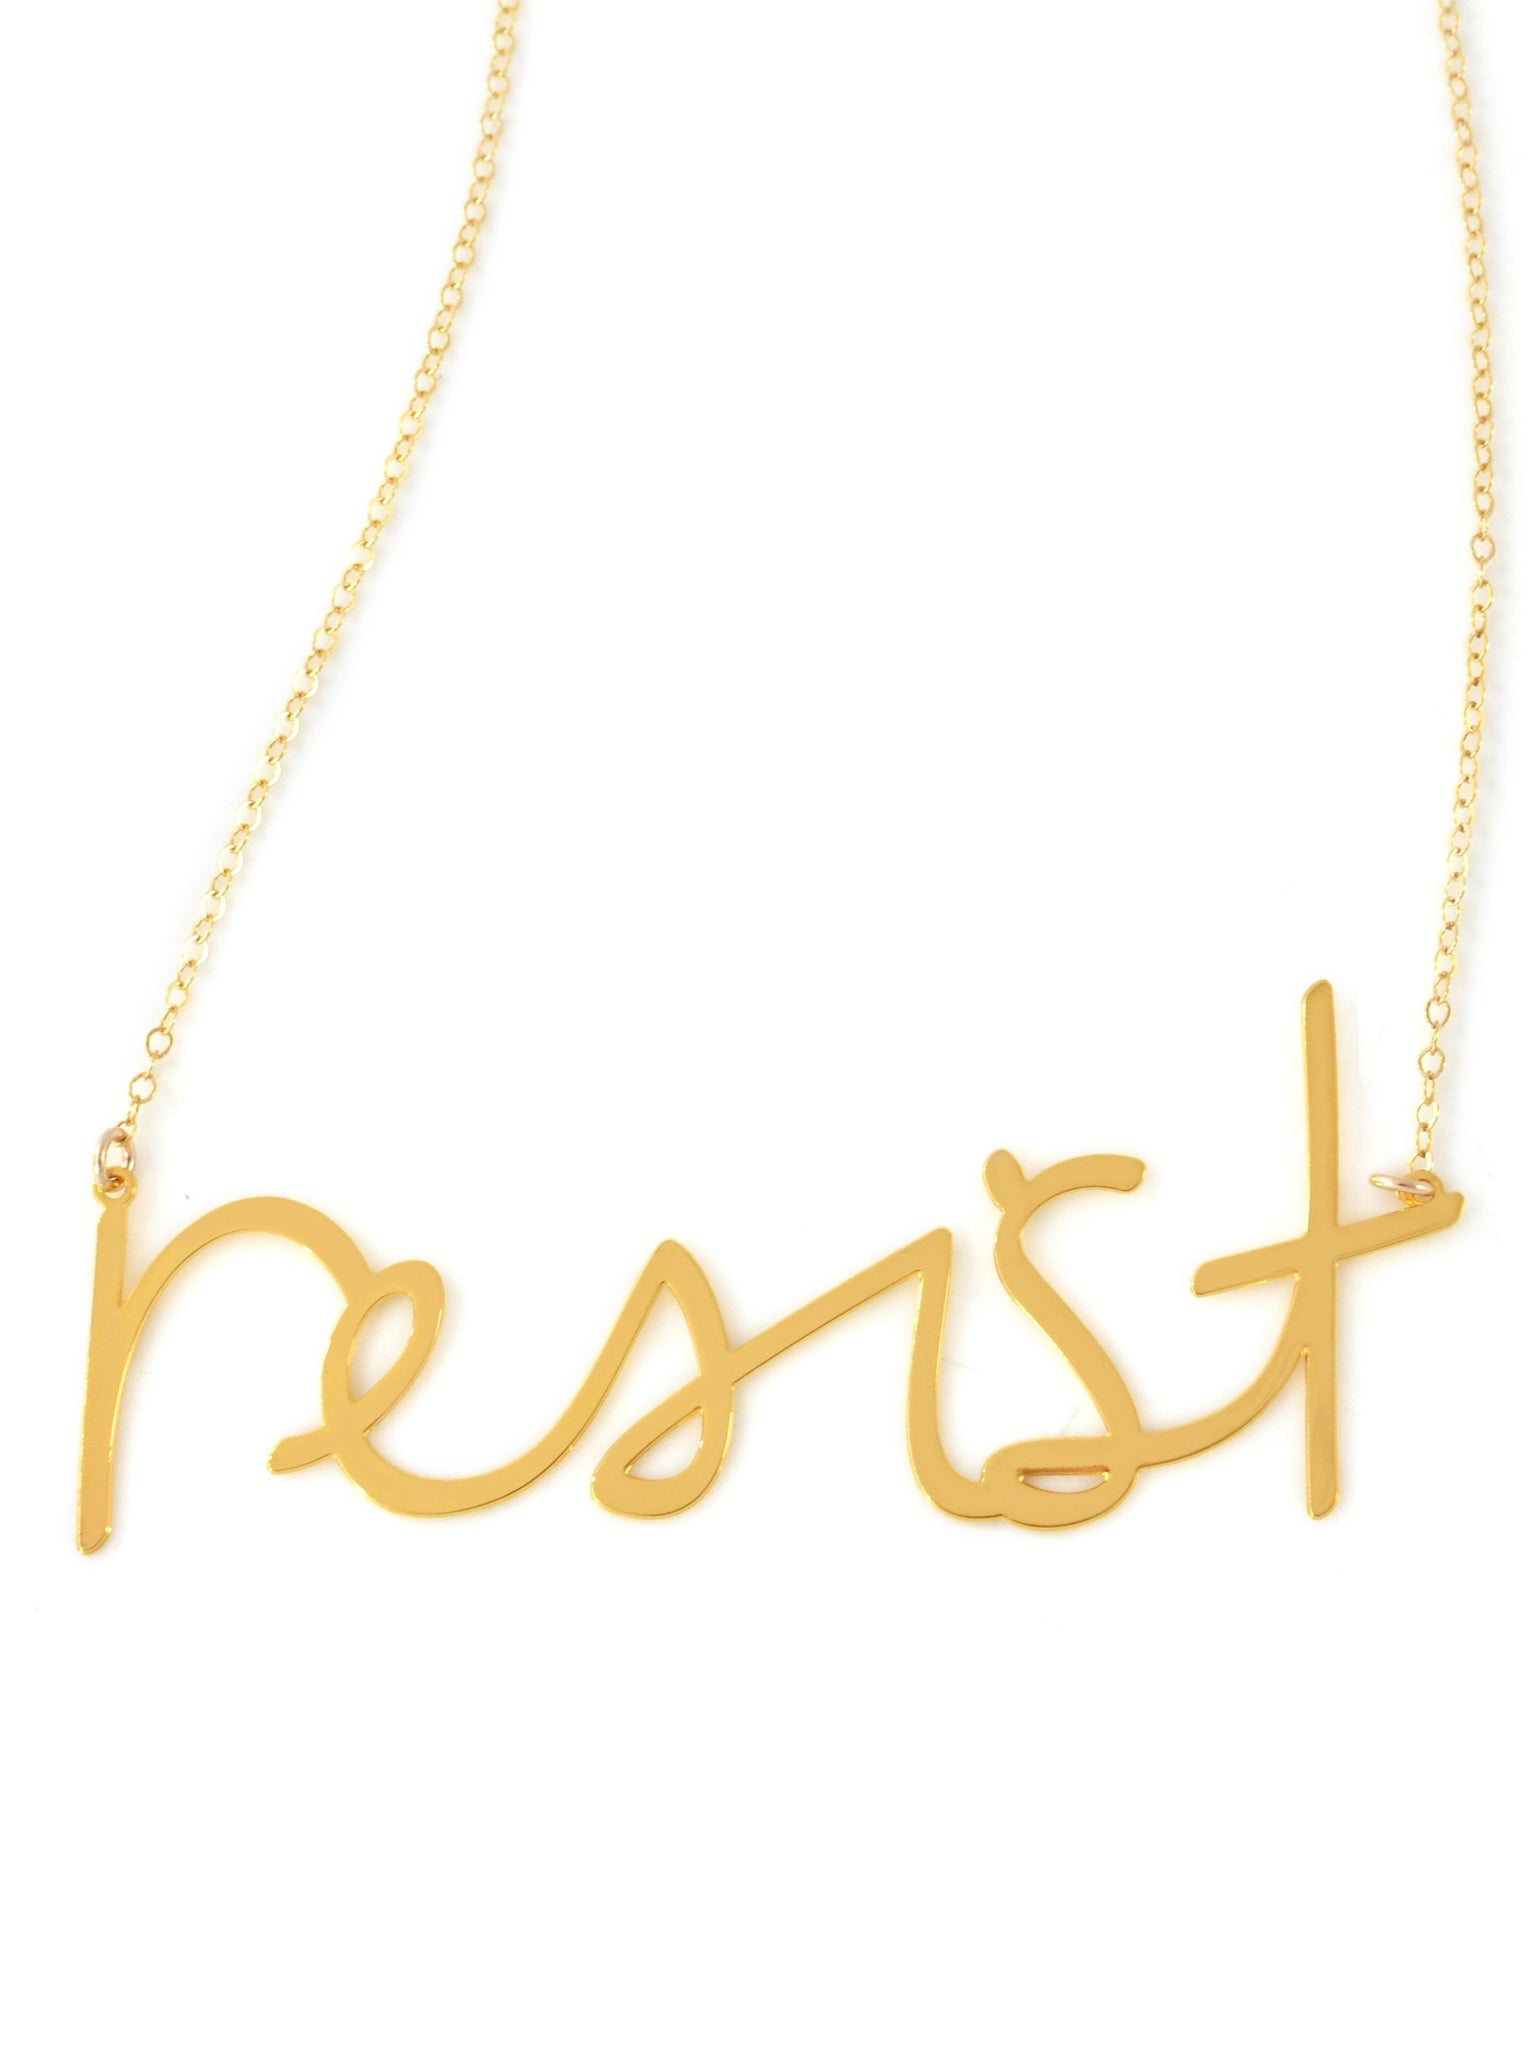 Resist Necklace - Brevity Jewelry - Made in USA - Affordable Gold and Silver Jewelry